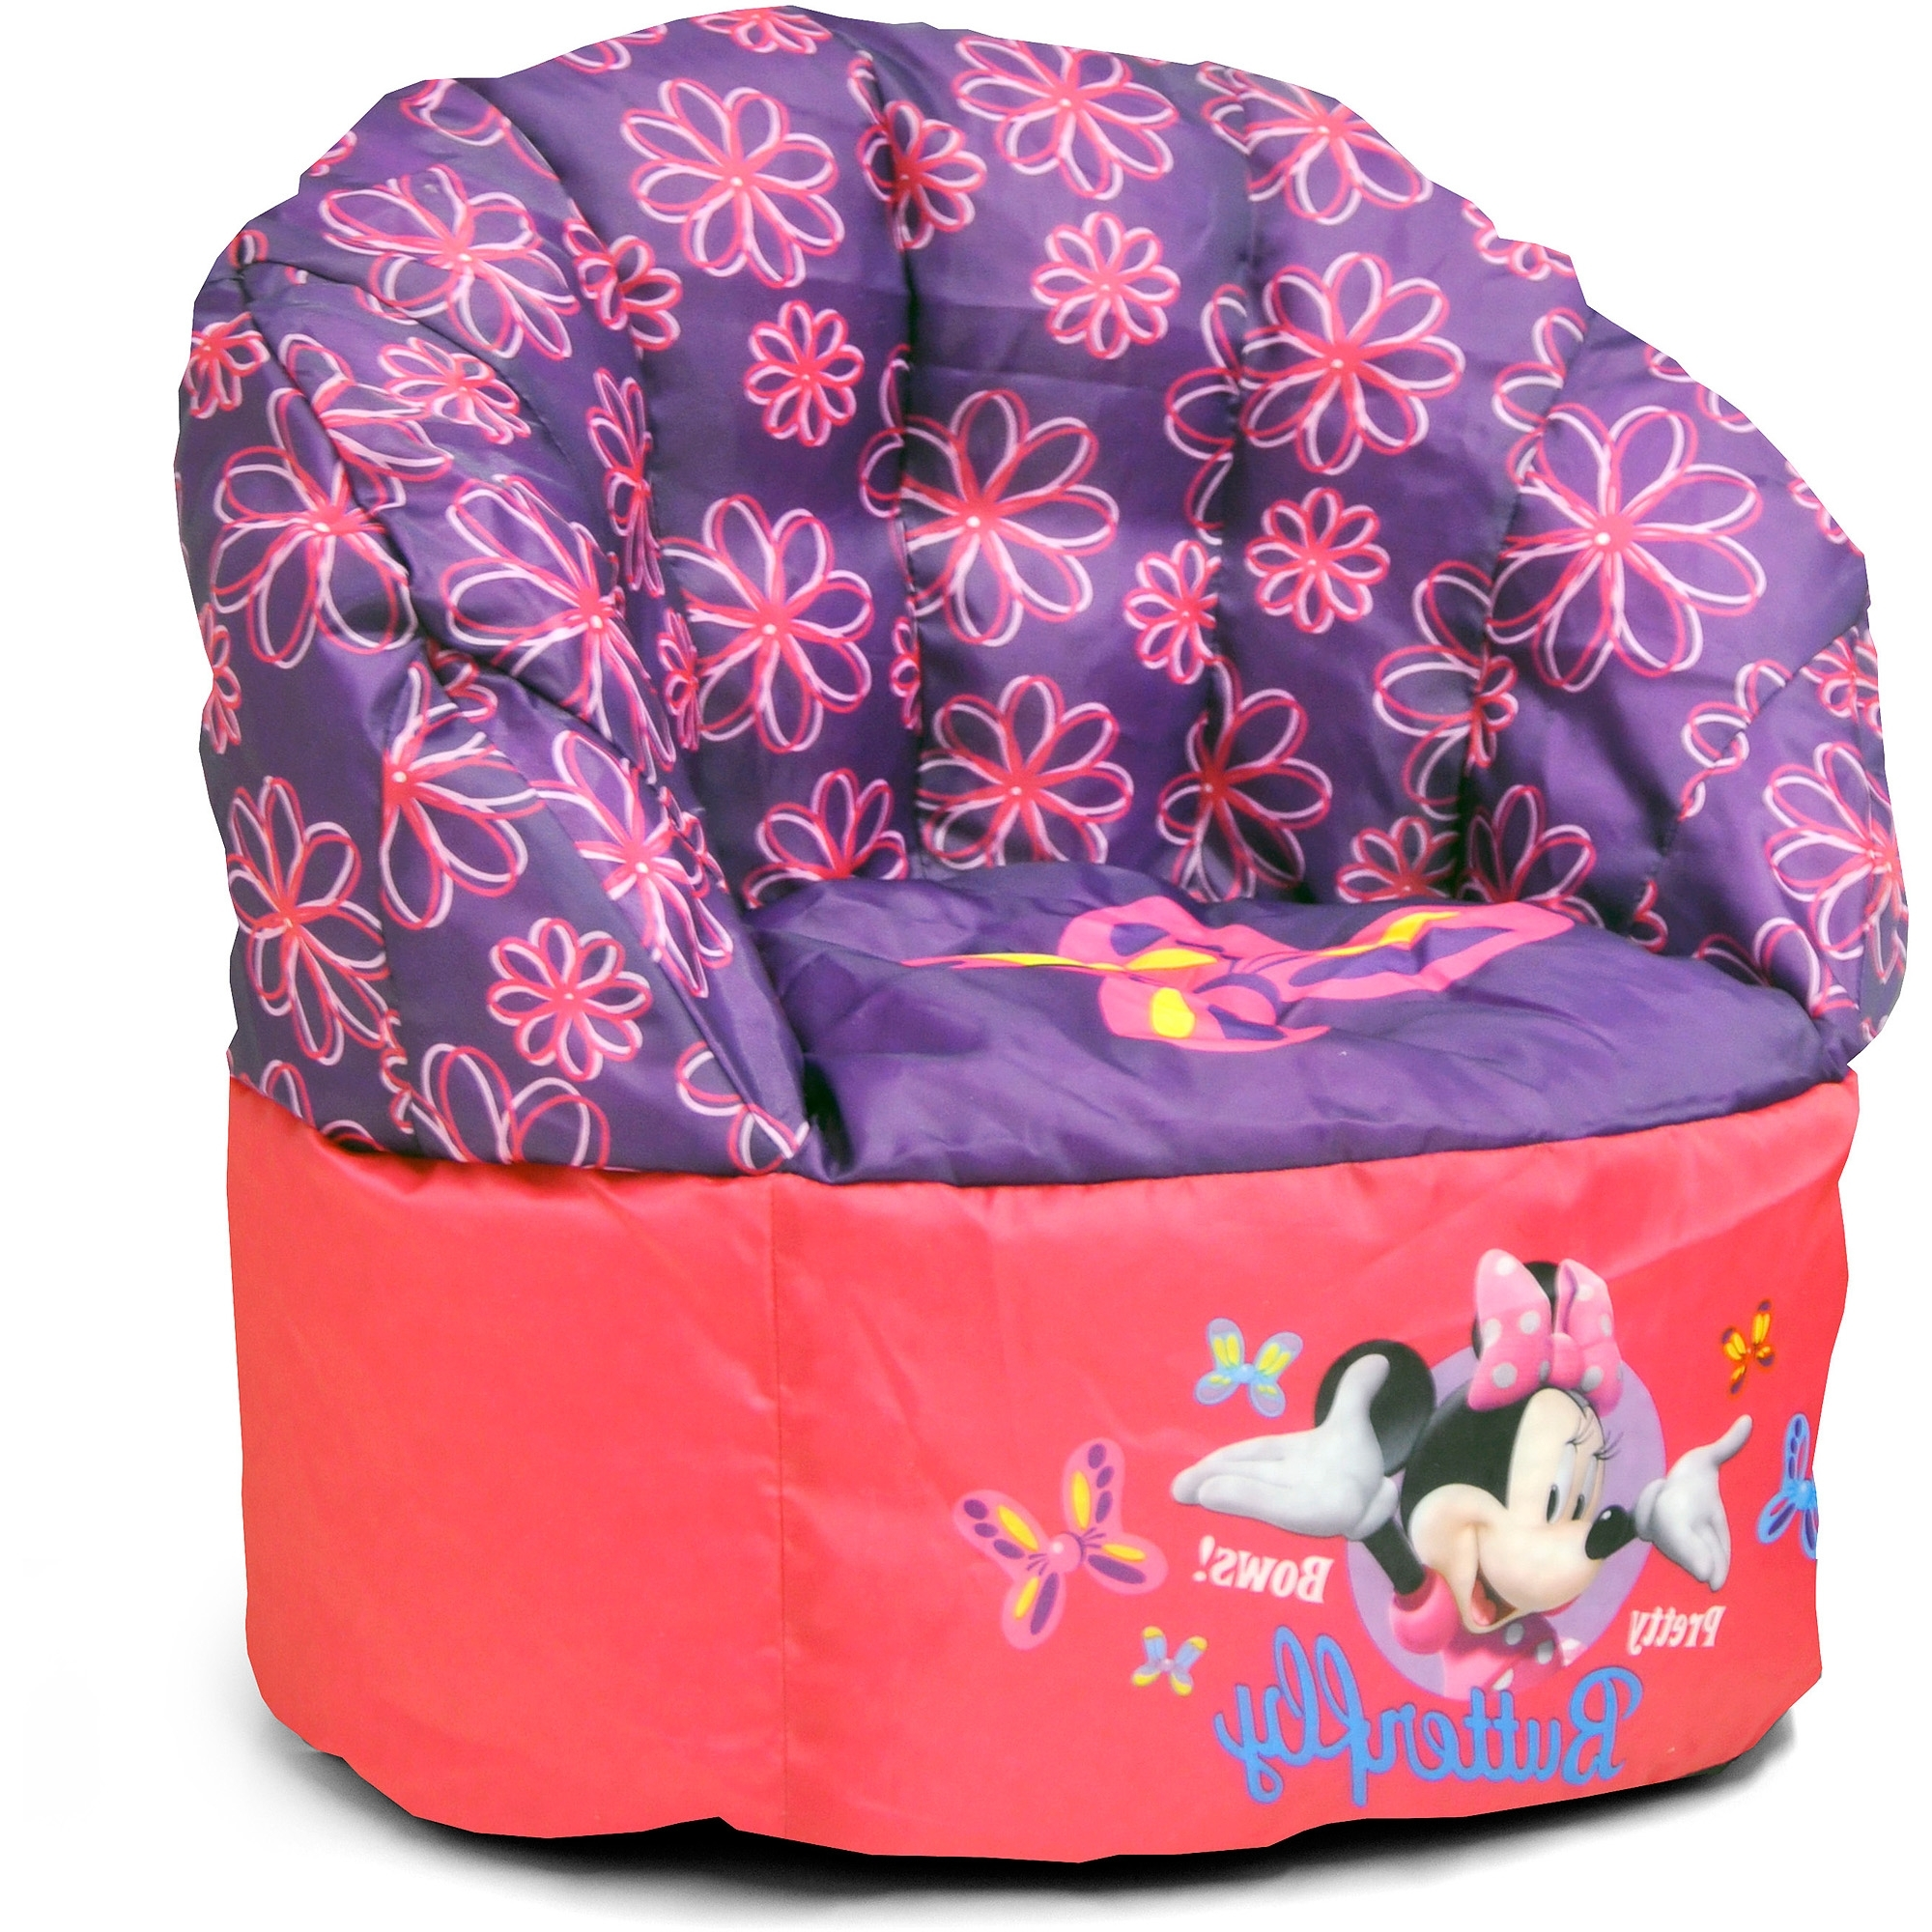 minnie mouse bean bag chair high toys r us showing photos of disney sofa chairs view 18 20 walmart intended for fashionable gallery